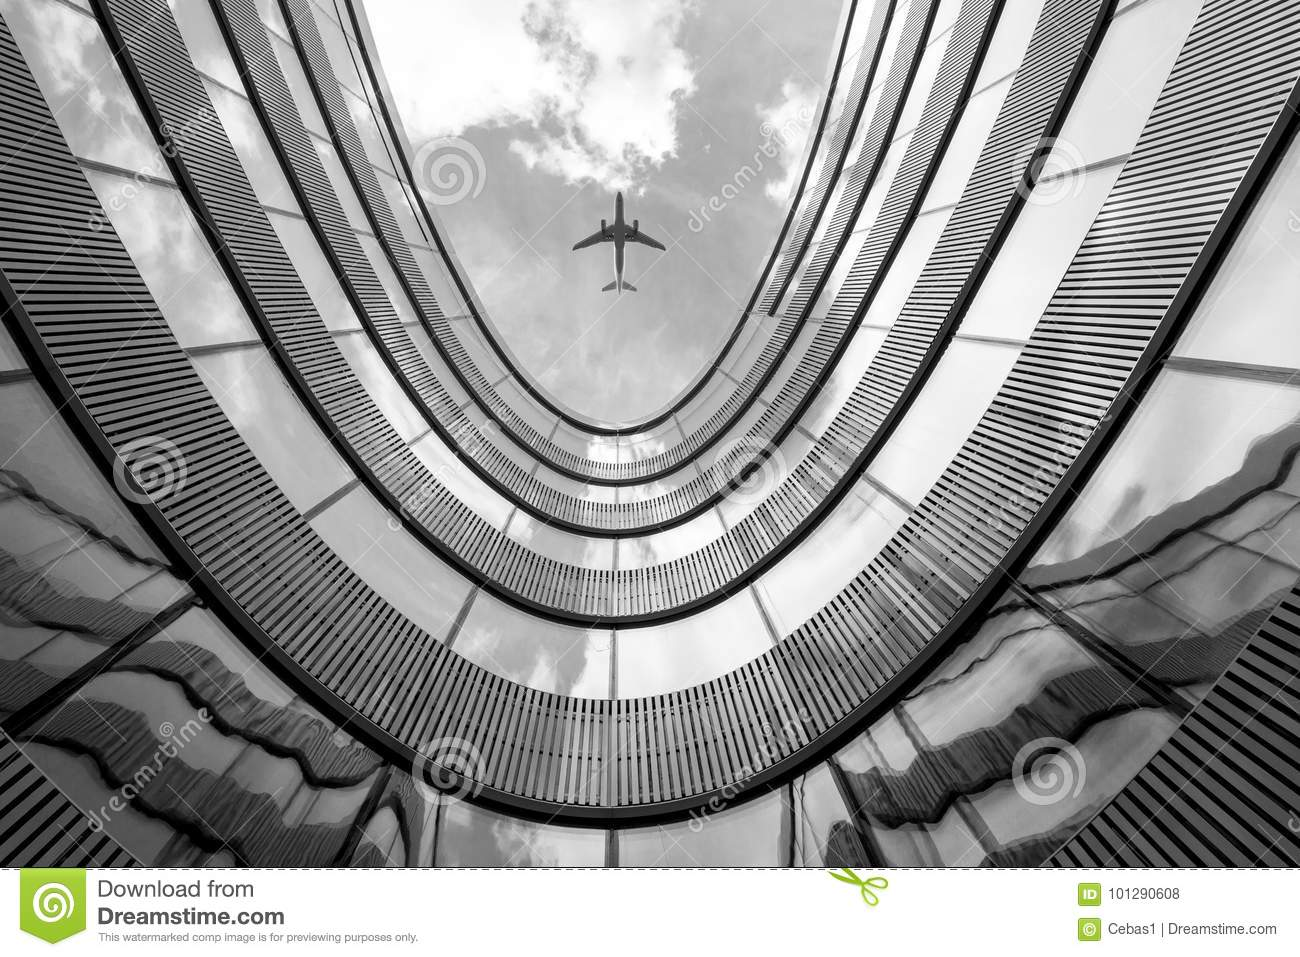 Flying airplane and modern architecture building